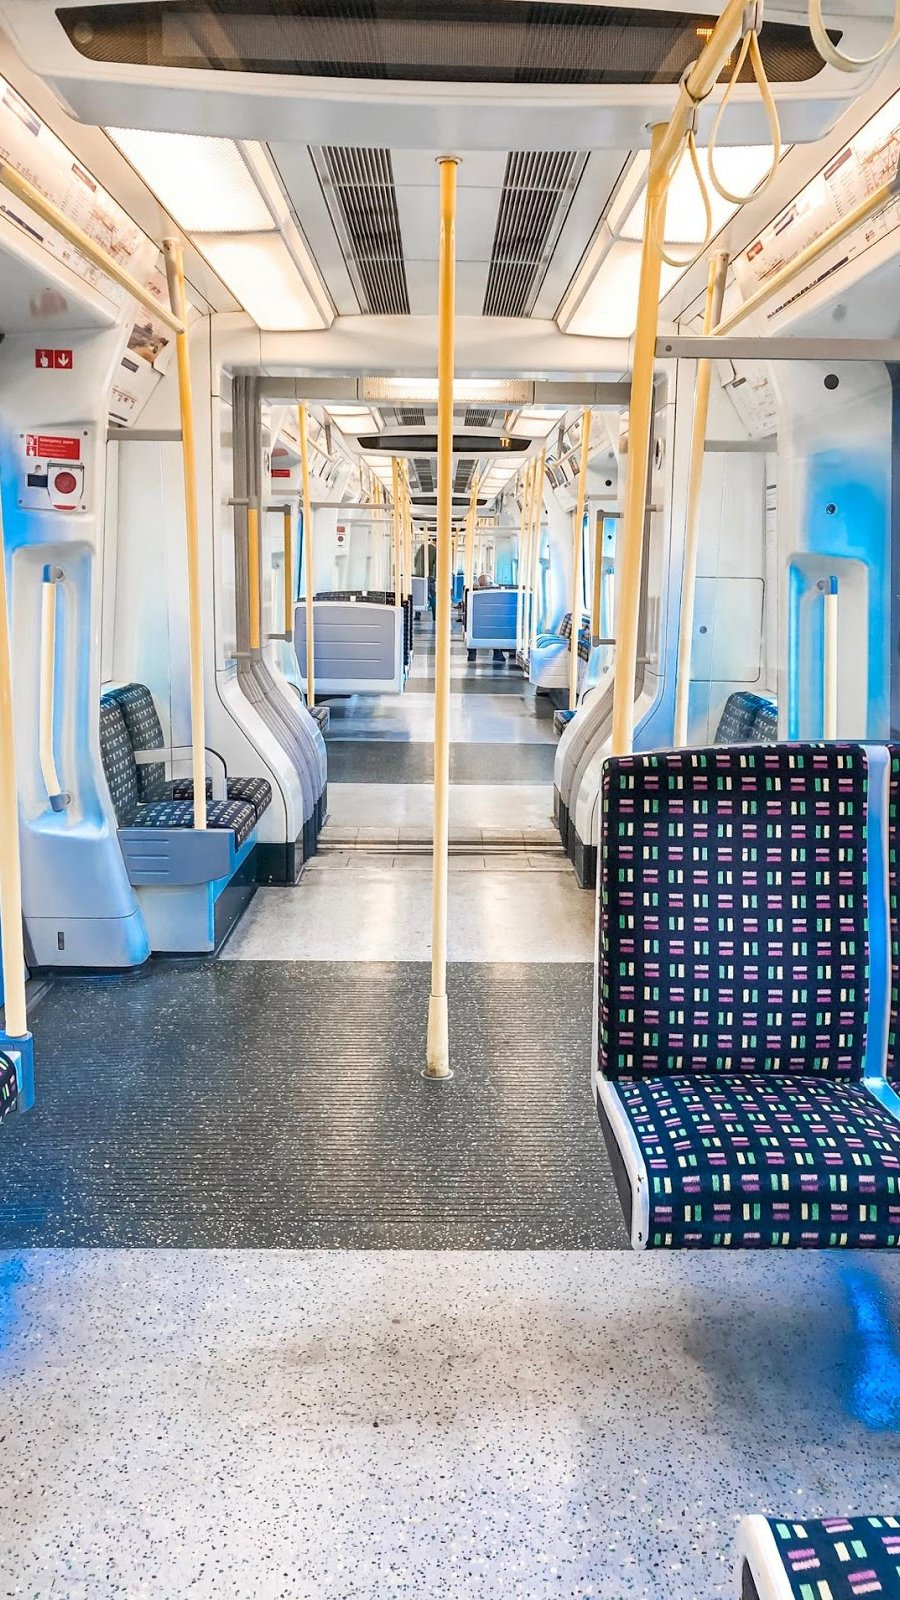 A picture of the seating on the Tube in London